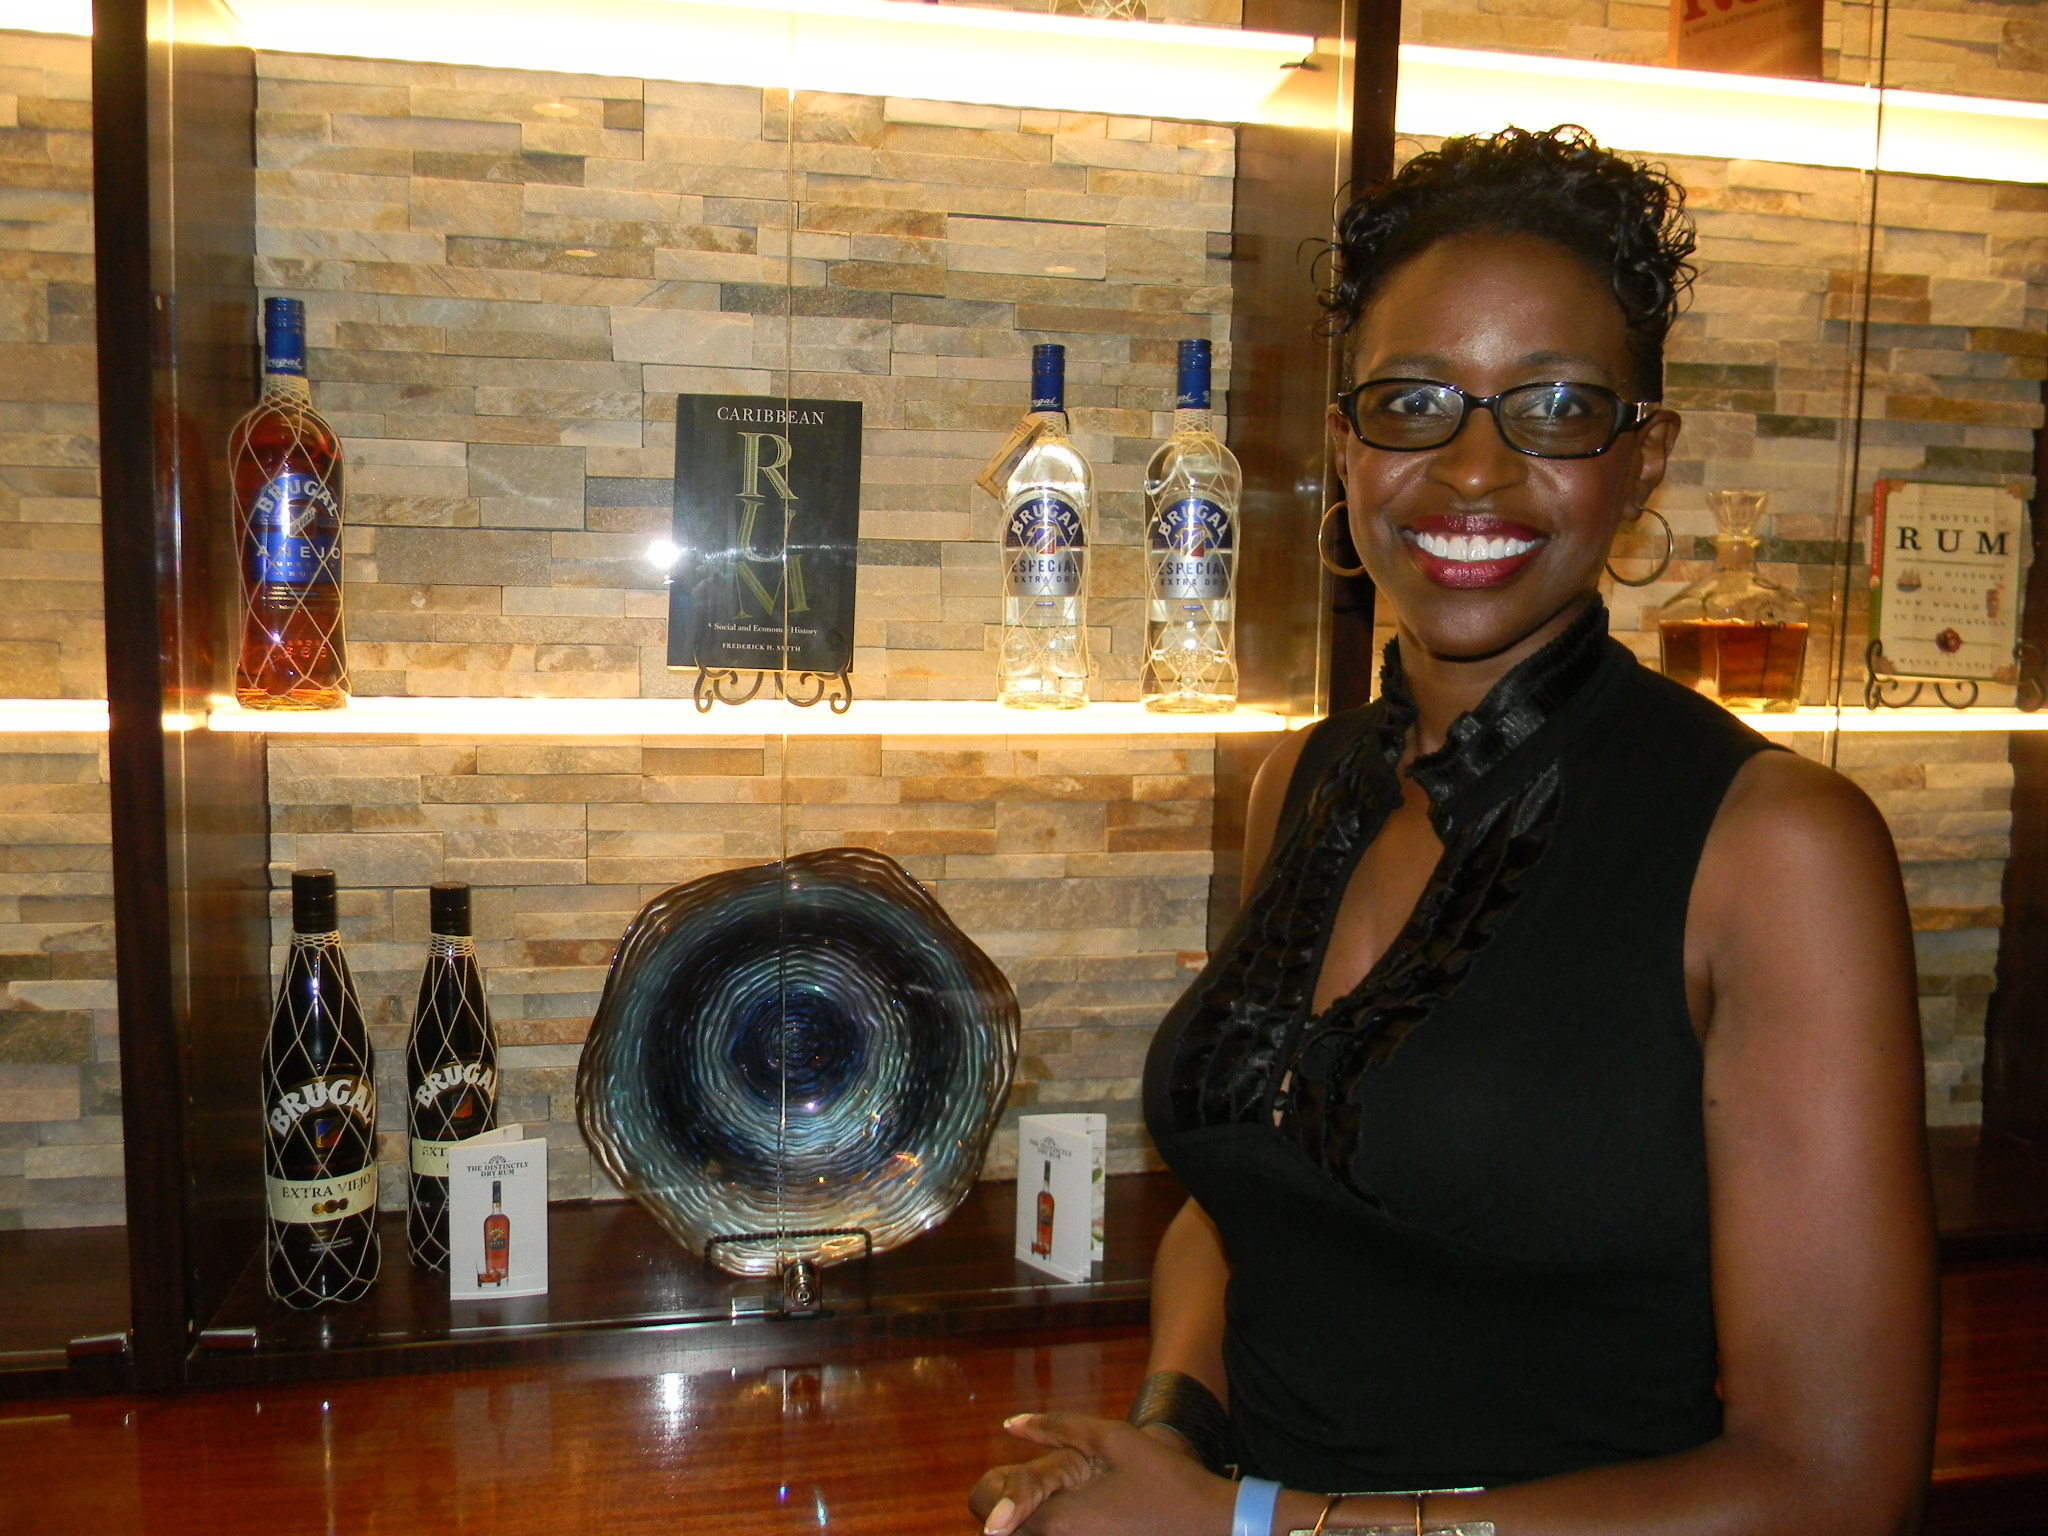 THERESE: Sugarcanes rum bar & lounge